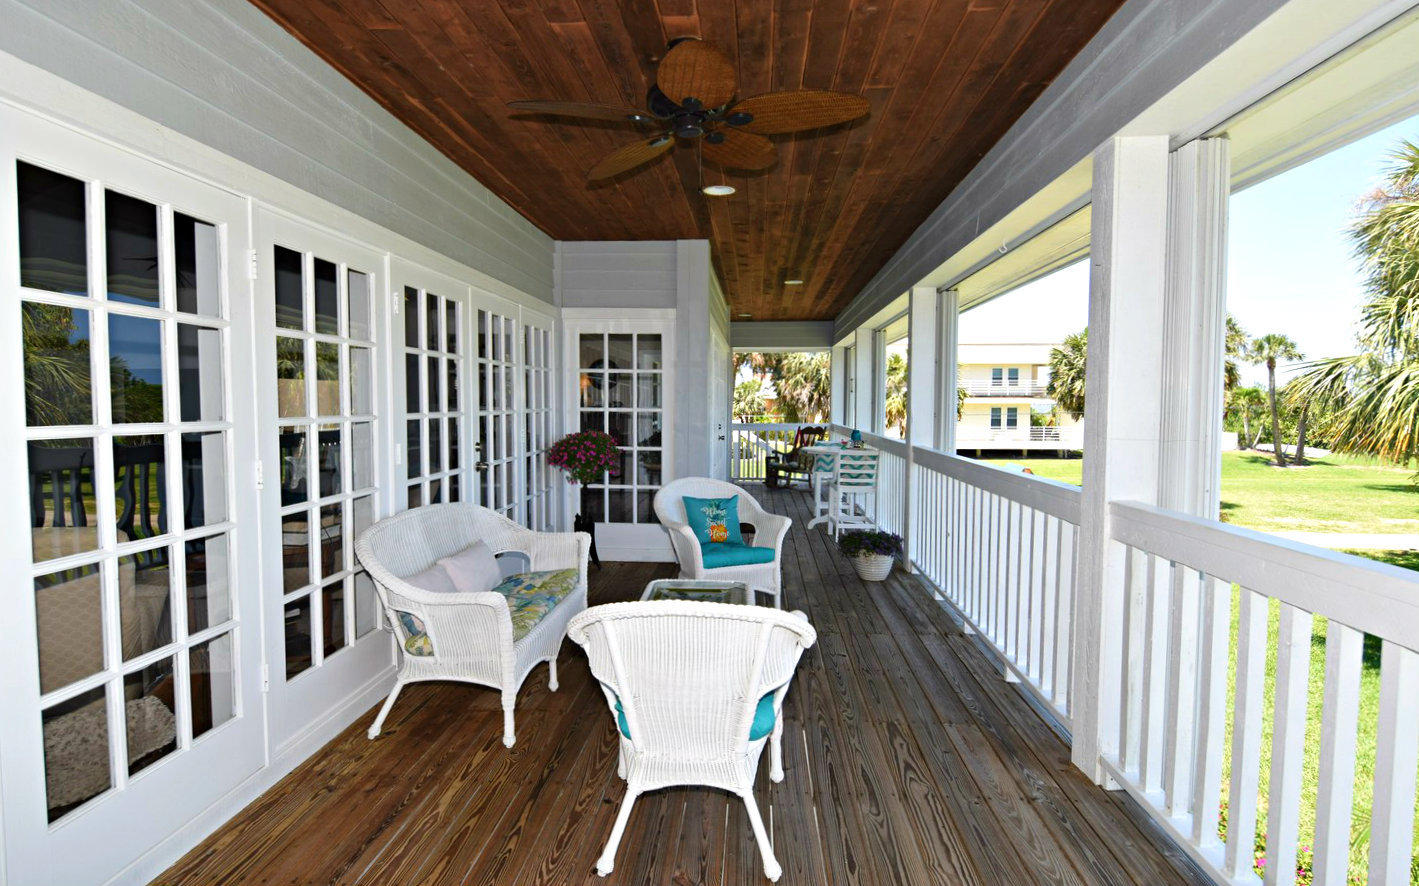 CAPTAINS COVE HOMES FOR SALE